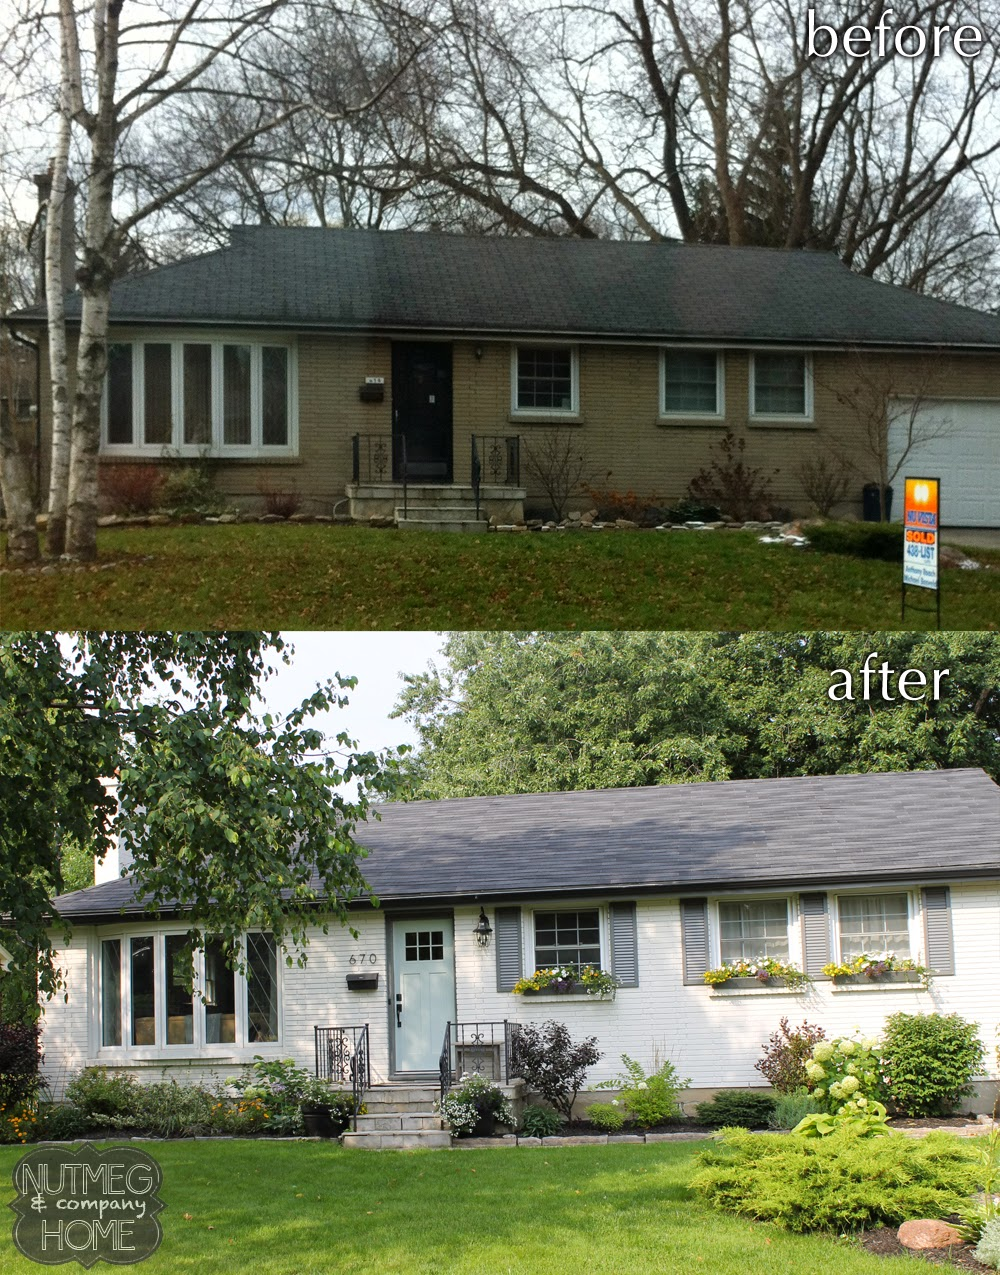 nutmeg company home before after curb appeal